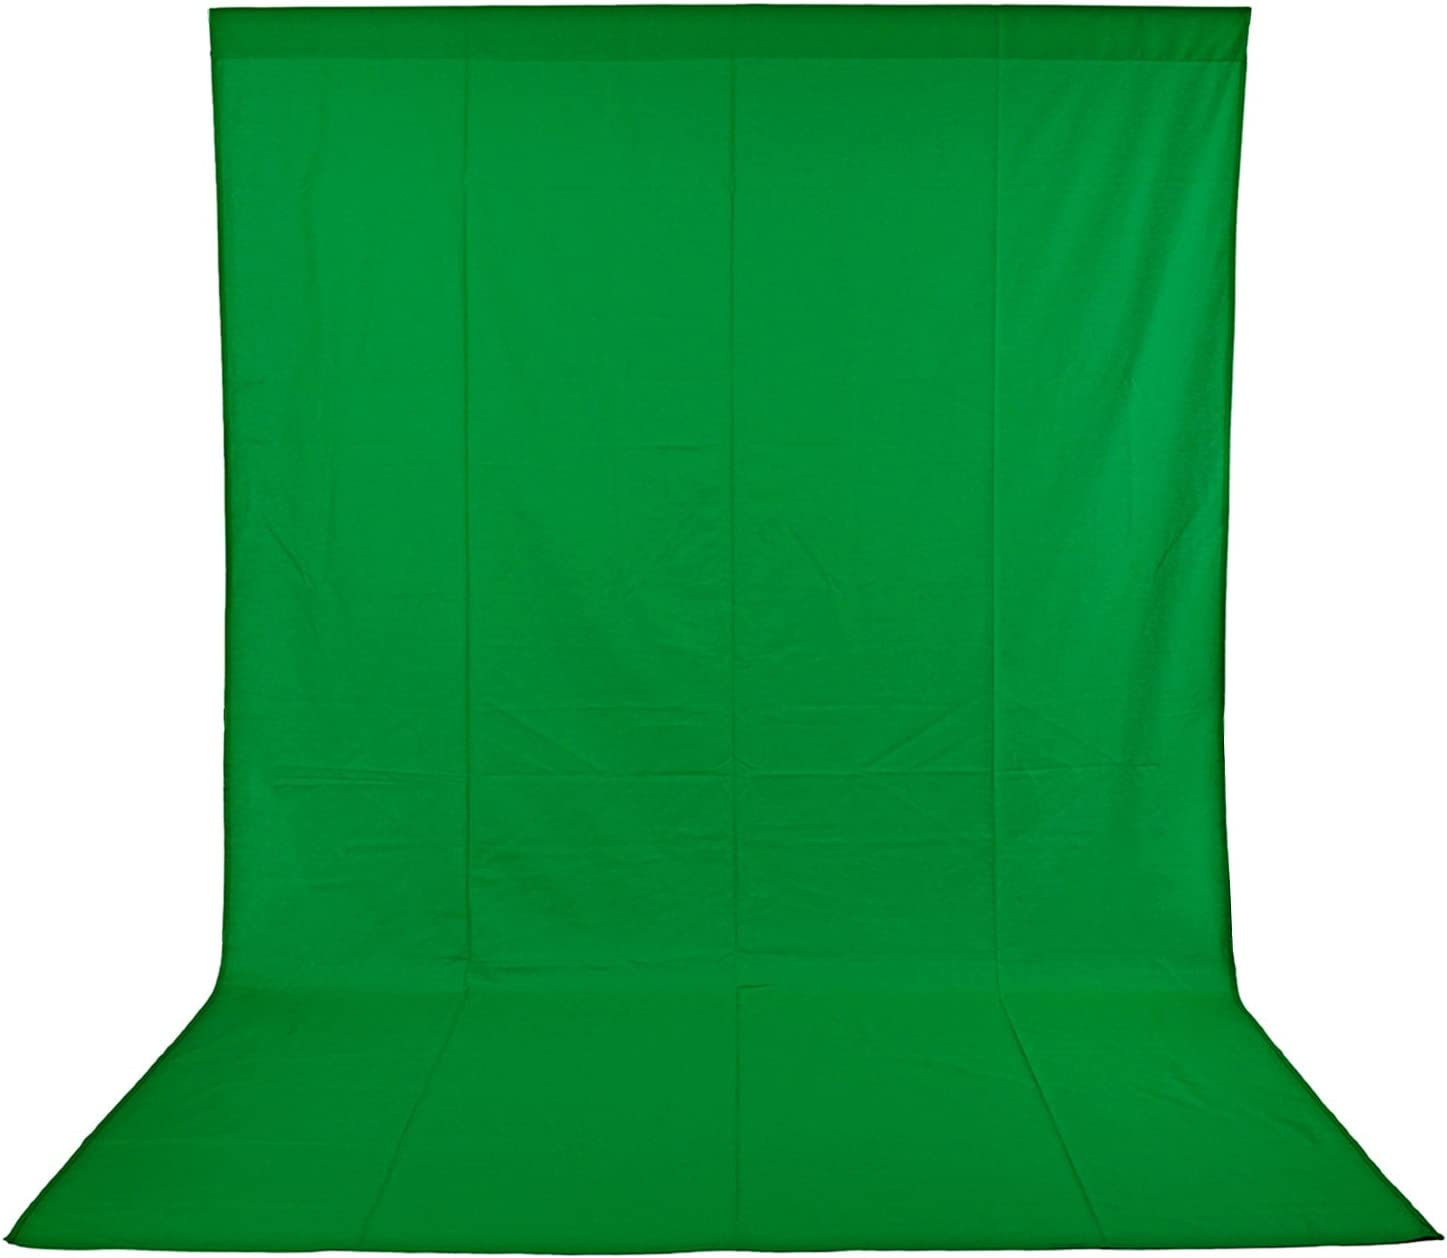 Neewer 10 x 12FT / 3 x 3.6M PRO Photo Studio 100% Pure Muslin Collapsible Backdrop Background for Photography,Video and Televison (Background ONLY) - GREEN